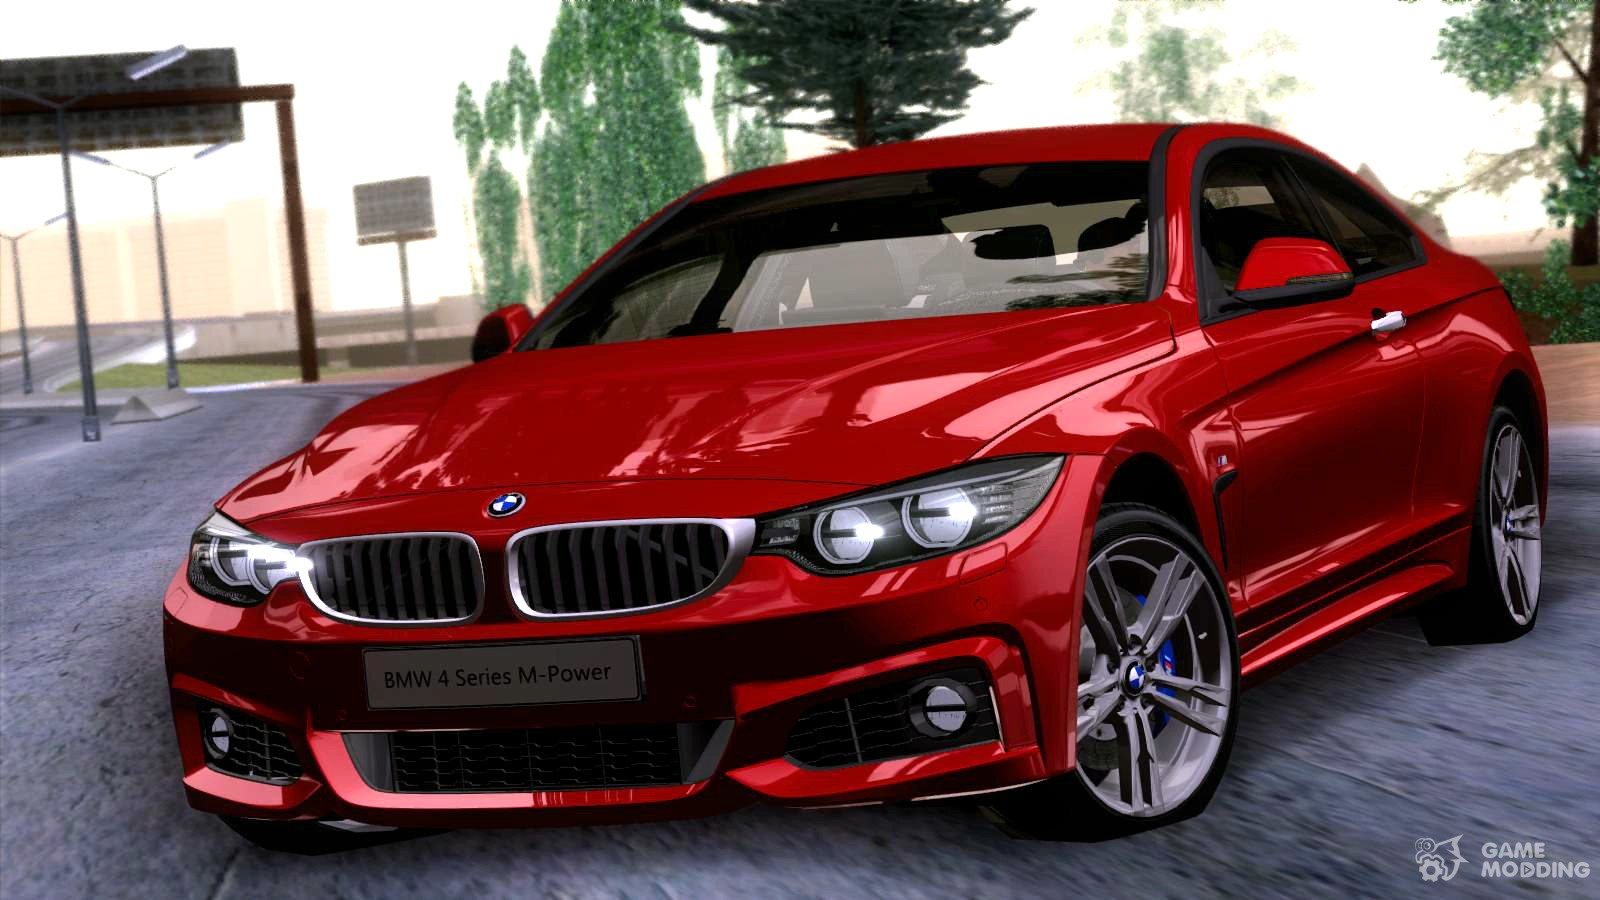 bmw 4 series coupe m sport 2014 for gta san andreas. Black Bedroom Furniture Sets. Home Design Ideas